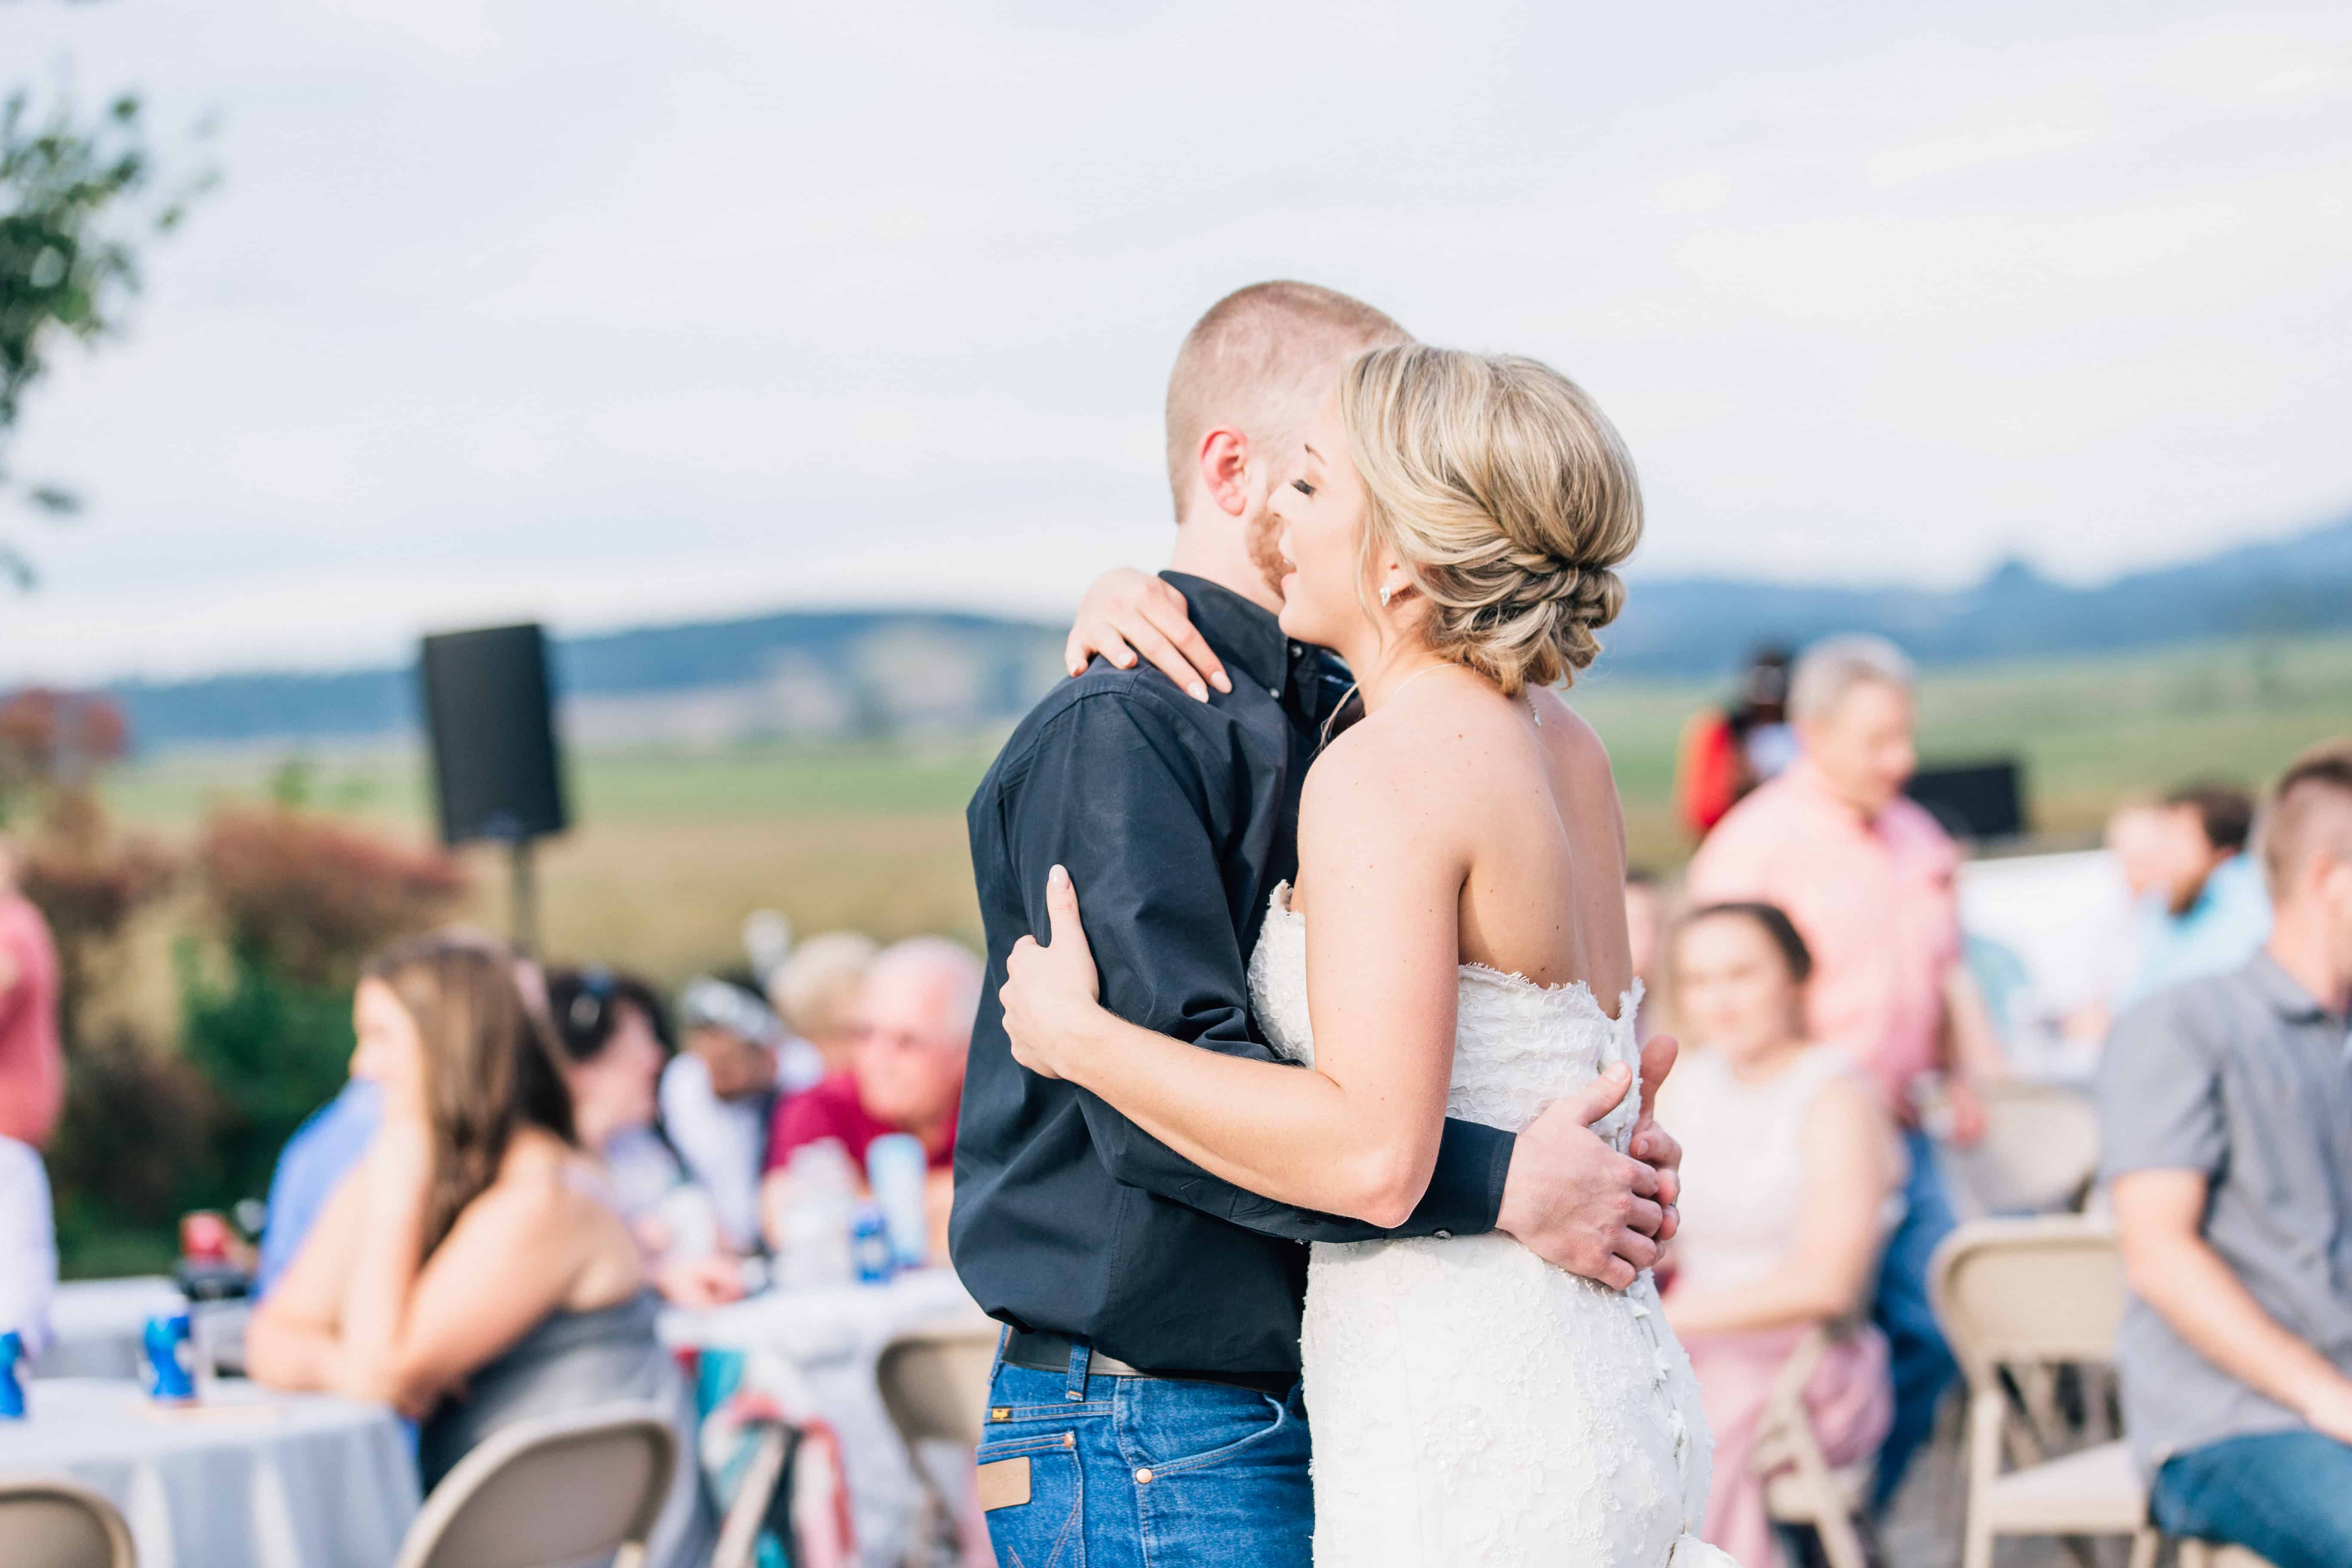 An image of a newlywed couple during their first dance at their wedding. The bride is in a strapless white gown. The groom is in blue jeans with a black button down dress shirt. Wedding Guests can be seen in the background of the picture.